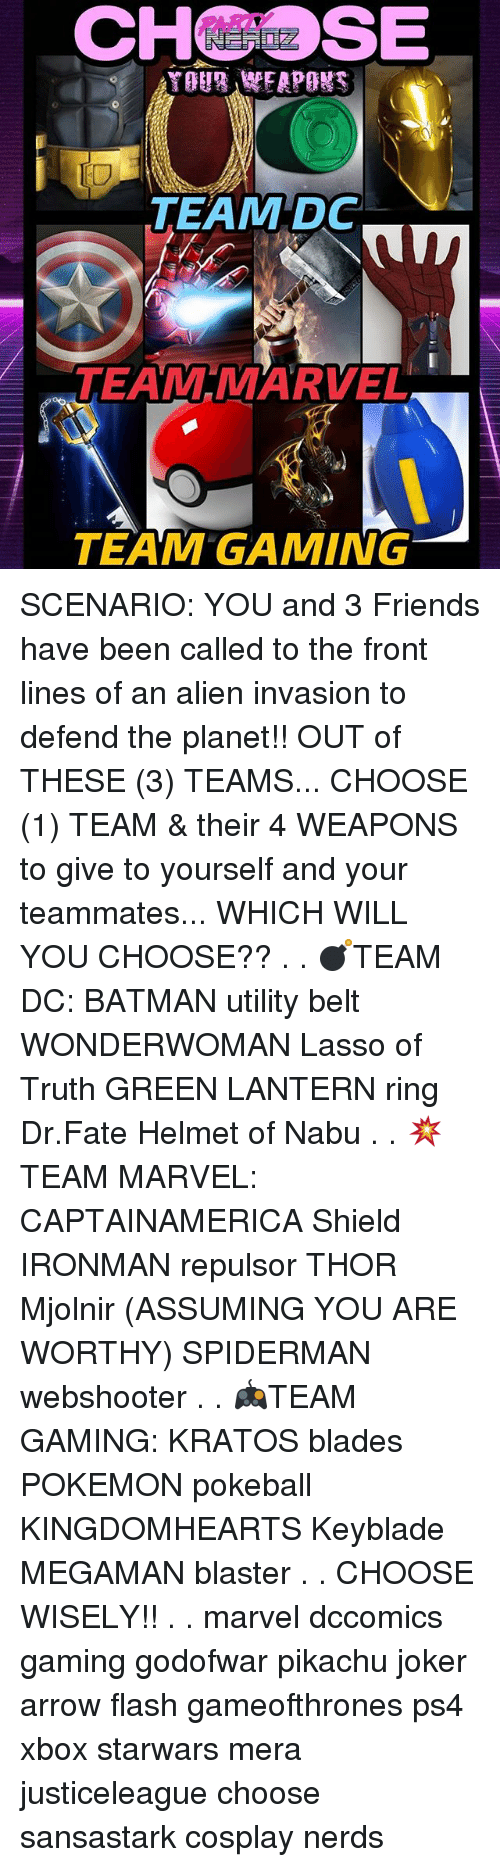 Batman, Friends, and Joker: CHSE  IO  TEAM DC  TEAM MARVEL  TEAM GAMING SCENARIO: YOU and 3 Friends have been called to the front lines of an alien invasion to defend the planet!! OUT of THESE (3) TEAMS... CHOOSE (1) TEAM & their 4 WEAPONS to give to yourself and your teammates... WHICH WILL YOU CHOOSE?? . . 💣TEAM DC: BATMAN utility belt WONDERWOMAN Lasso of Truth GREEN LANTERN ring Dr.Fate Helmet of Nabu . . 💥TEAM MARVEL: CAPTAINAMERICA Shield IRONMAN repulsor THOR Mjolnir (ASSUMING YOU ARE WORTHY) SPIDERMAN webshooter . . 🎮TEAM GAMING: KRATOS blades POKEMON pokeball KINGDOMHEARTS Keyblade MEGAMAN blaster . . CHOOSE WISELY!! . . marvel dccomics gaming godofwar pikachu joker arrow flash gameofthrones ps4 xbox starwars mera justiceleague choose sansastark cosplay nerds